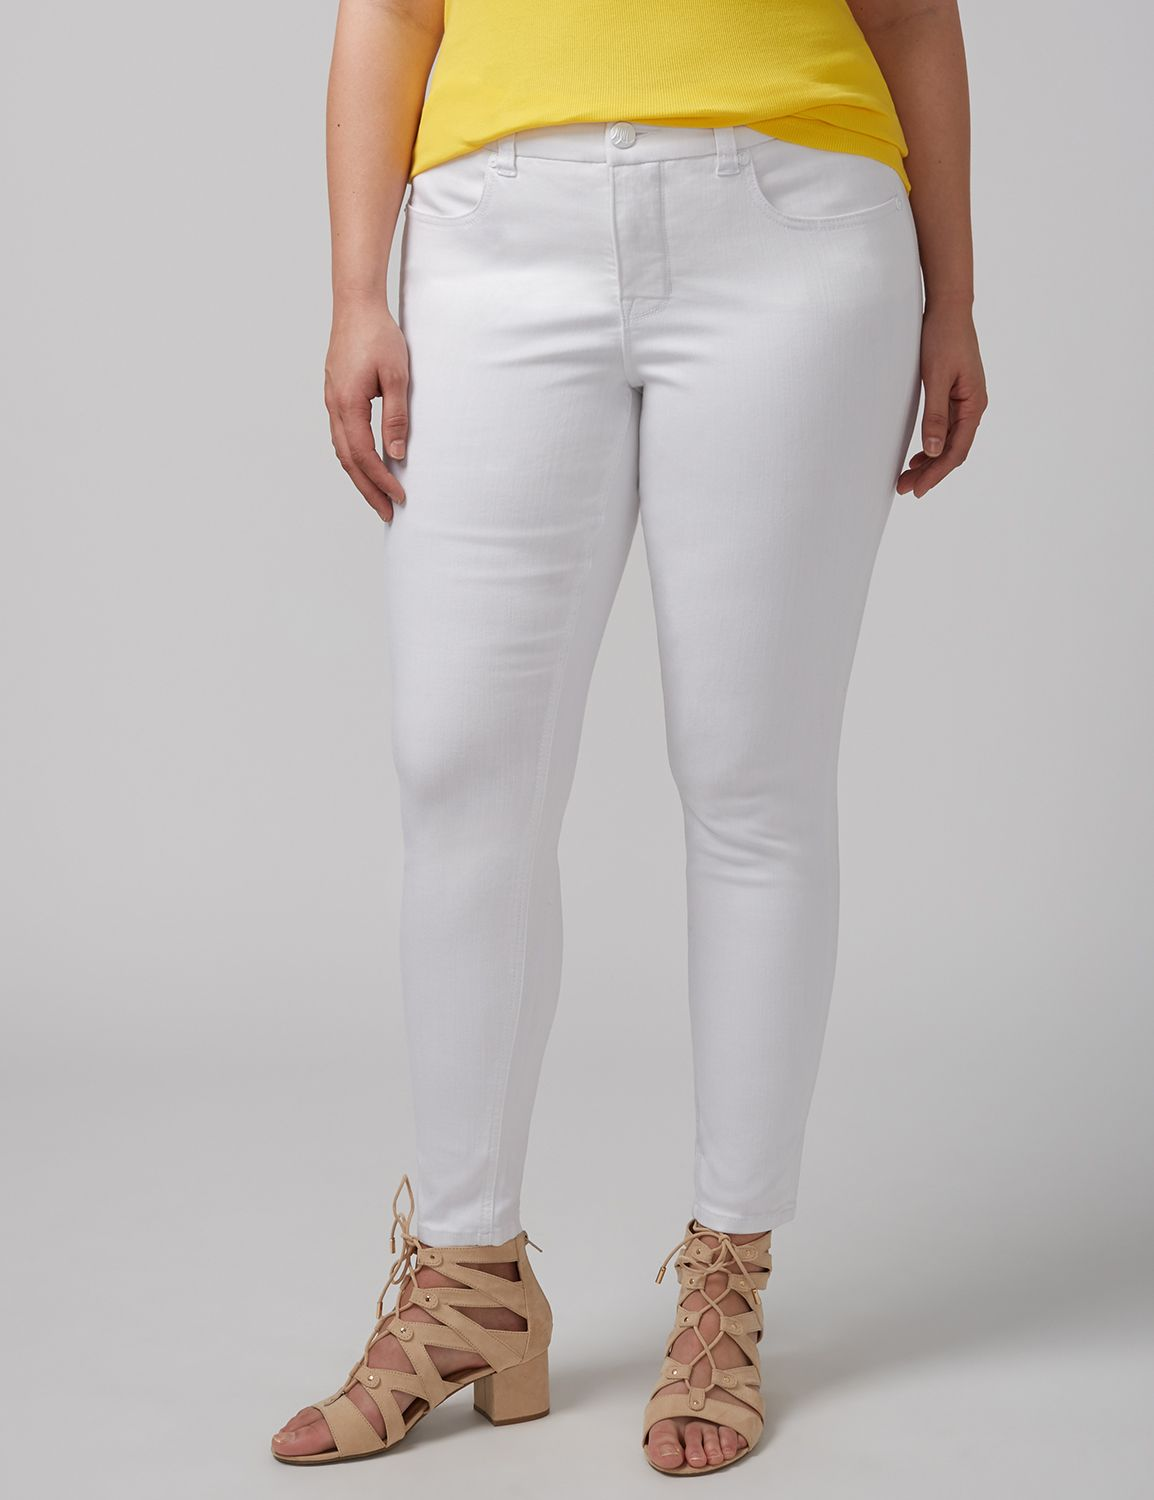 Lane Bryant Womens Pencil Ankle Jean By Melissa Mccarthy Seven7 18 White